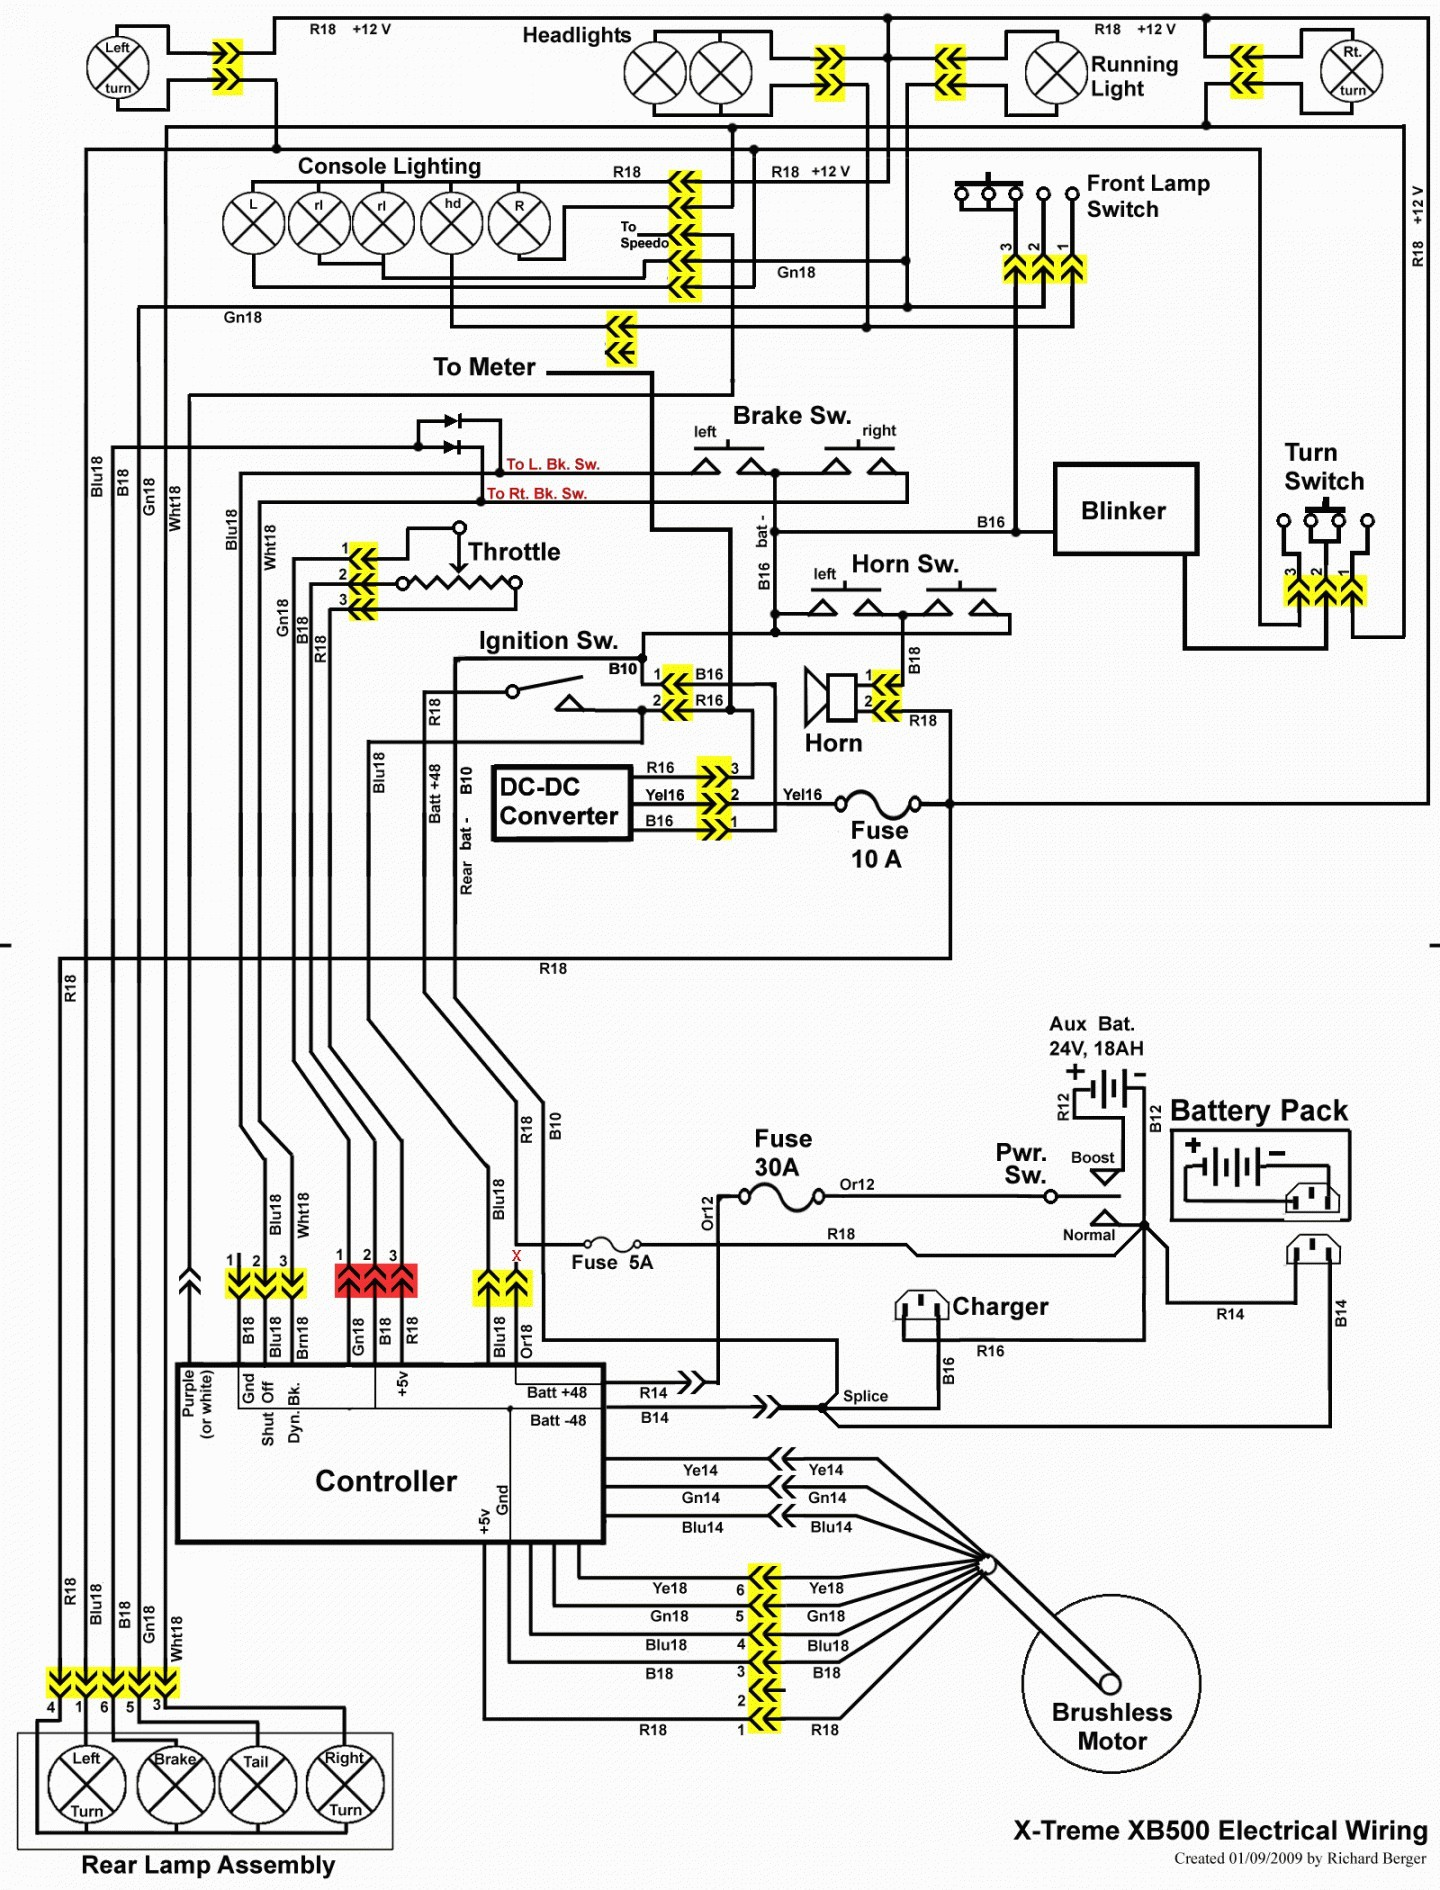 Xtreme Box Wiring Diagram - Wiring Diagram Work on